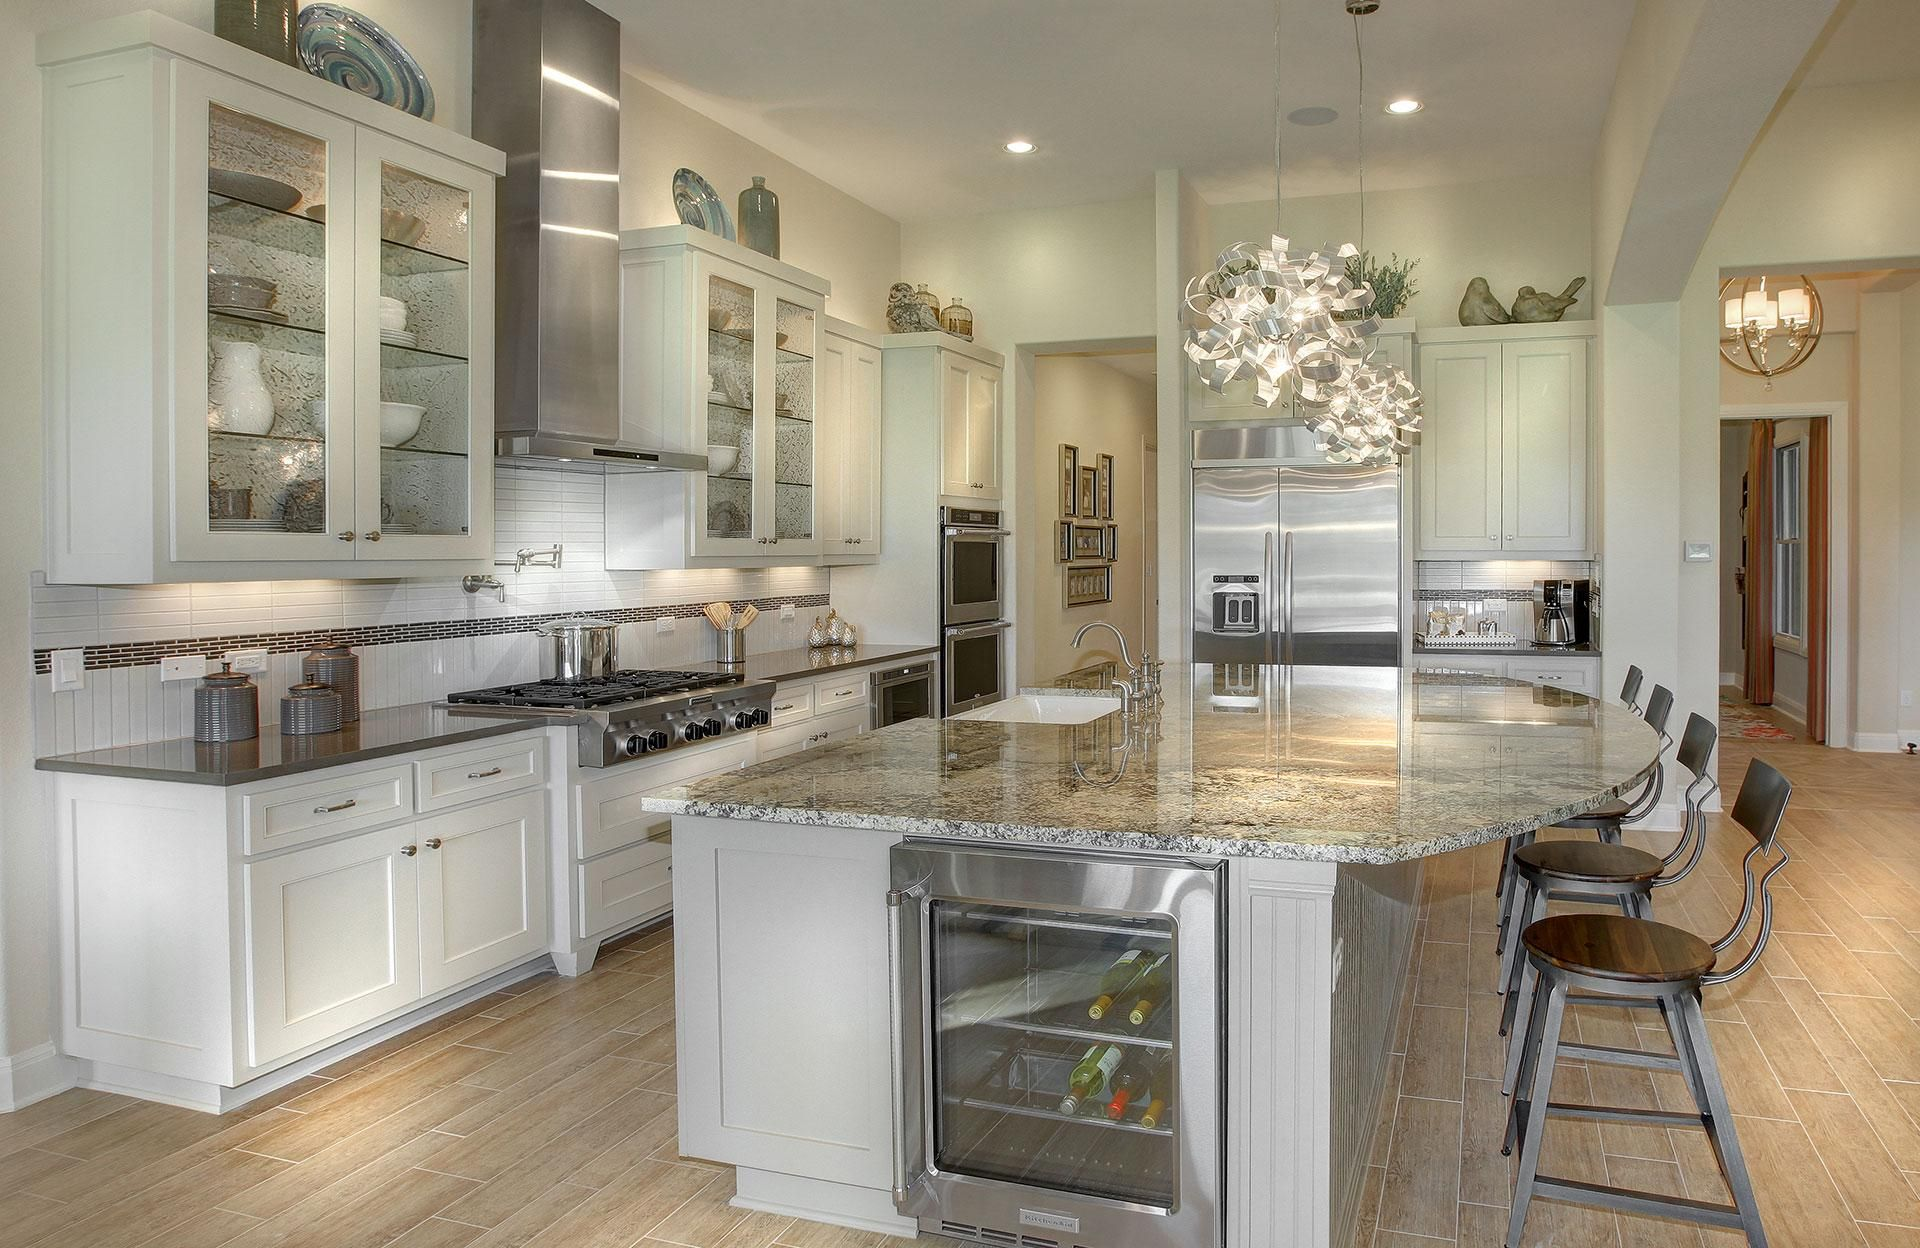 Wine Cabinet in Island   Custom kitchen cabinets, Curved ...